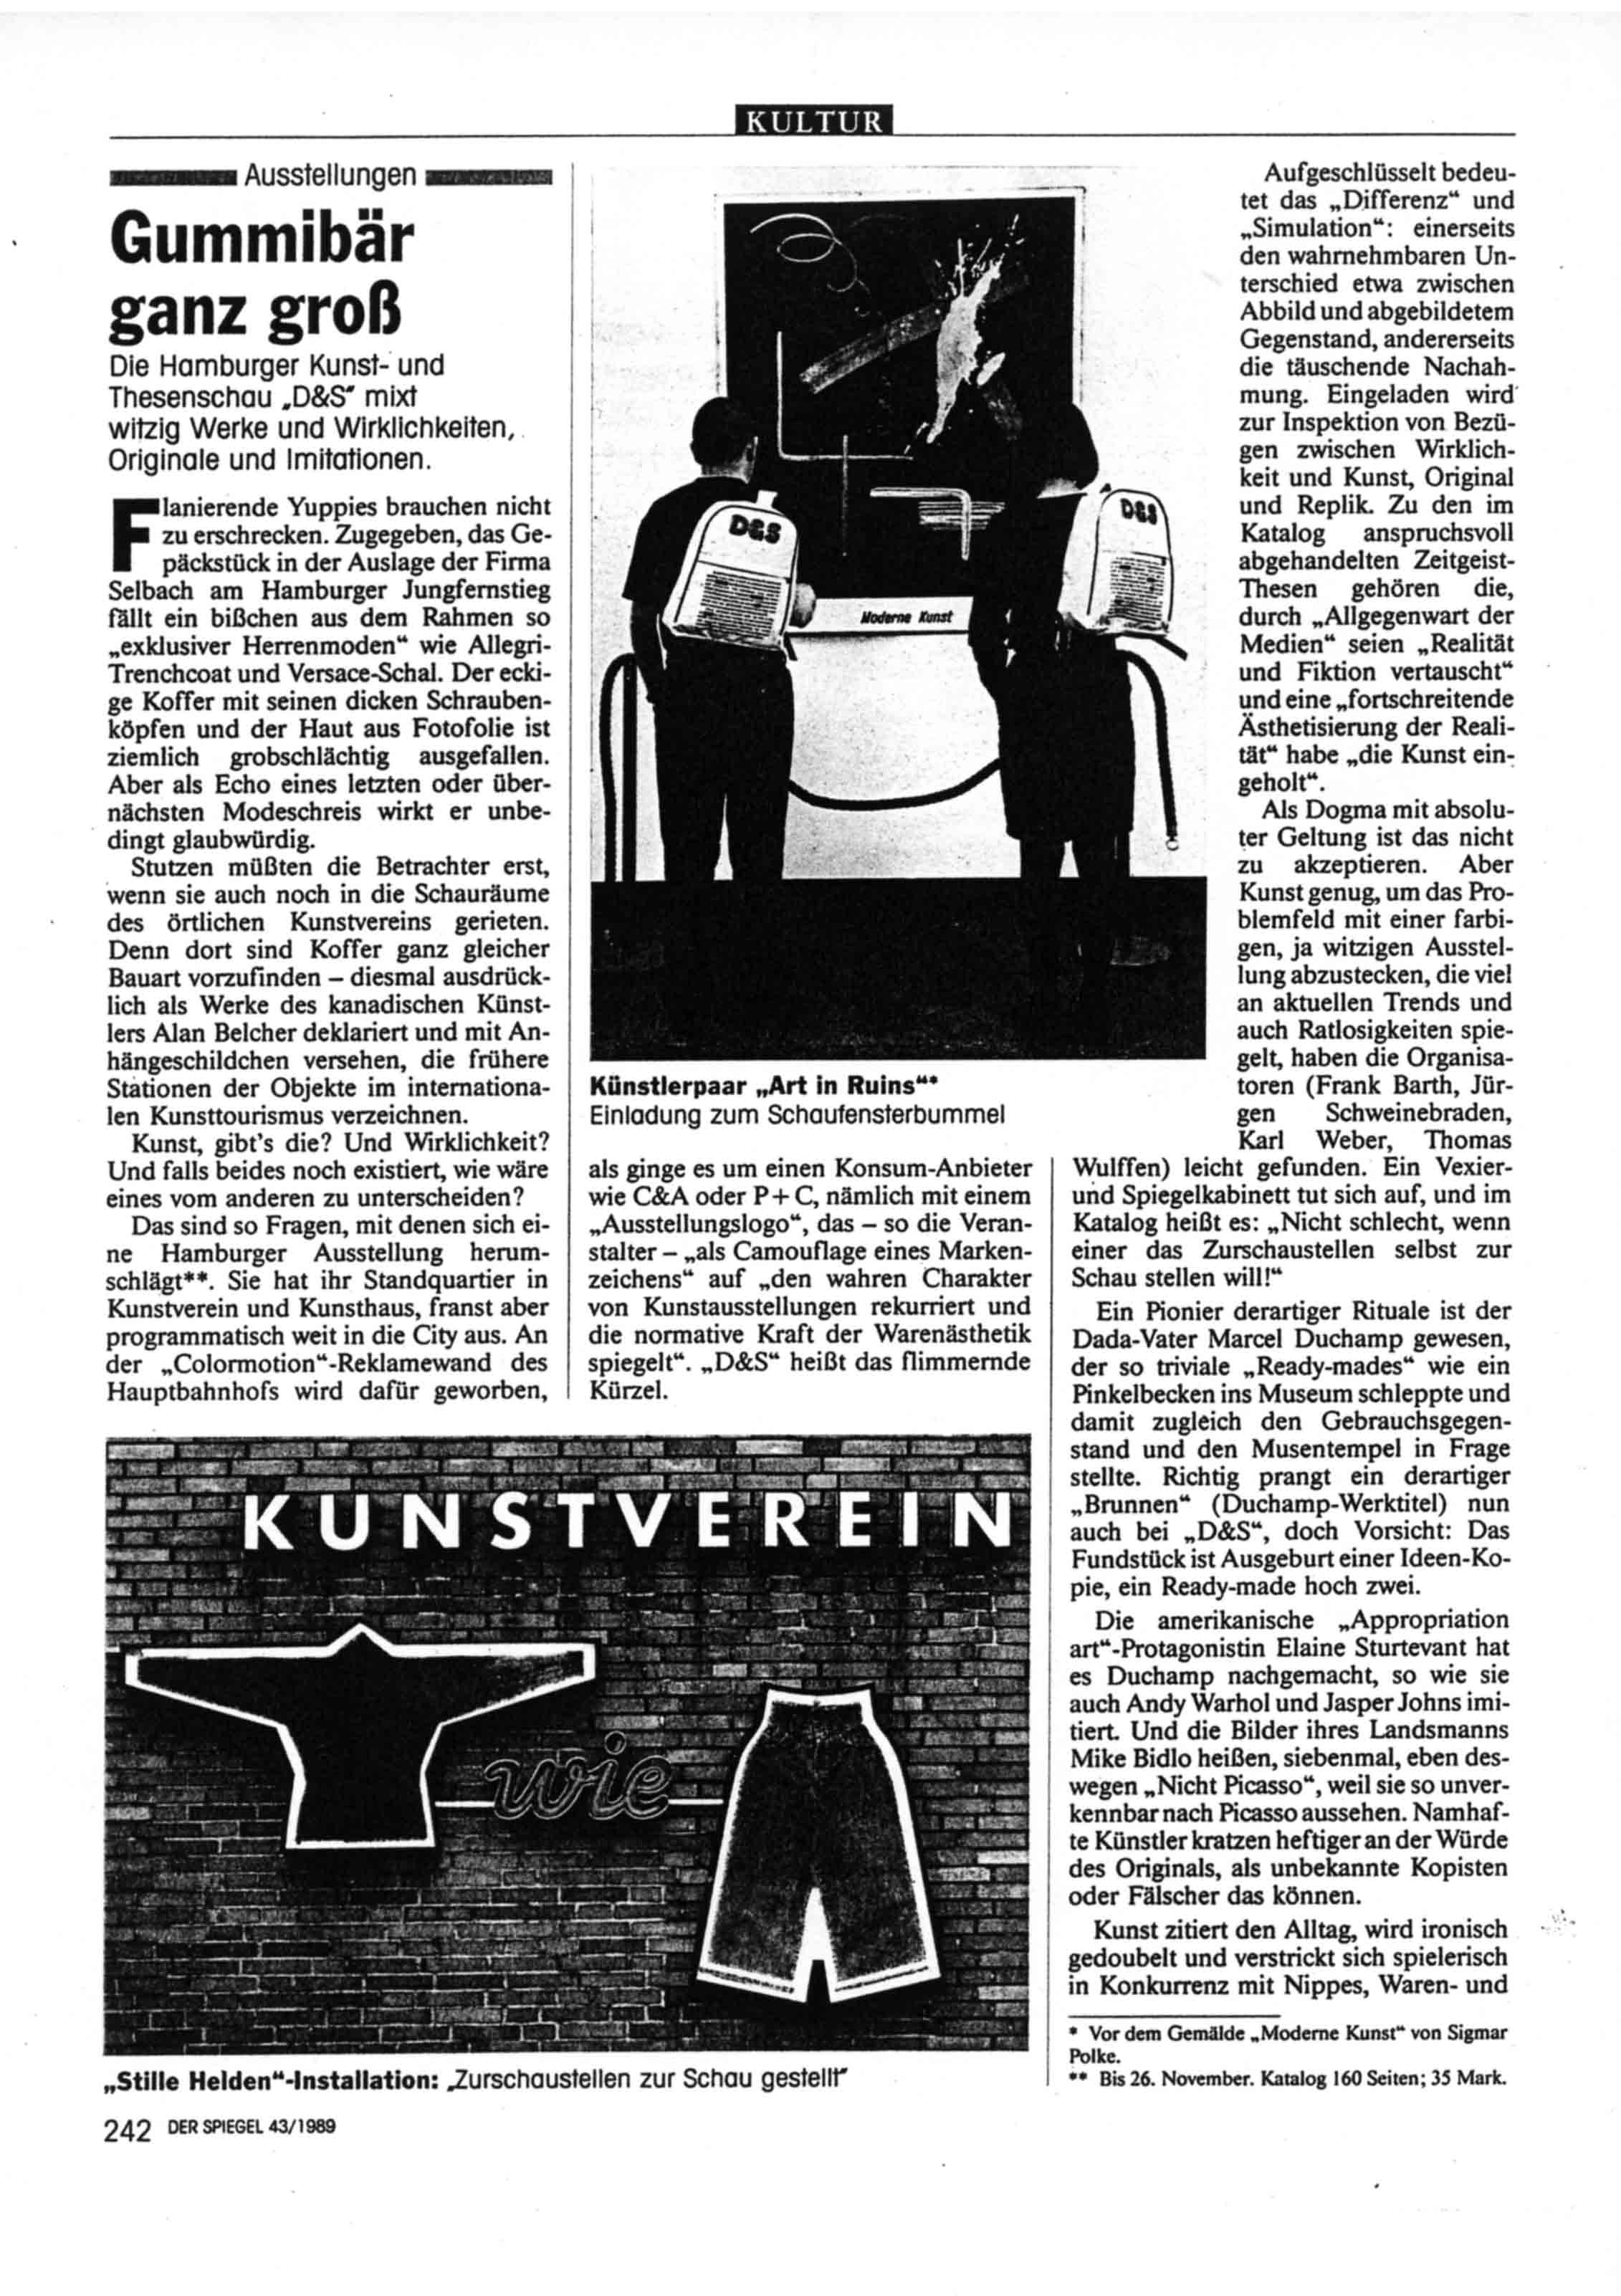 'Gummibar ganz gross'   Review of 'D & S AUSTELLUNG' Der Spiegel  No 43  Oct 23  1989 pdf download